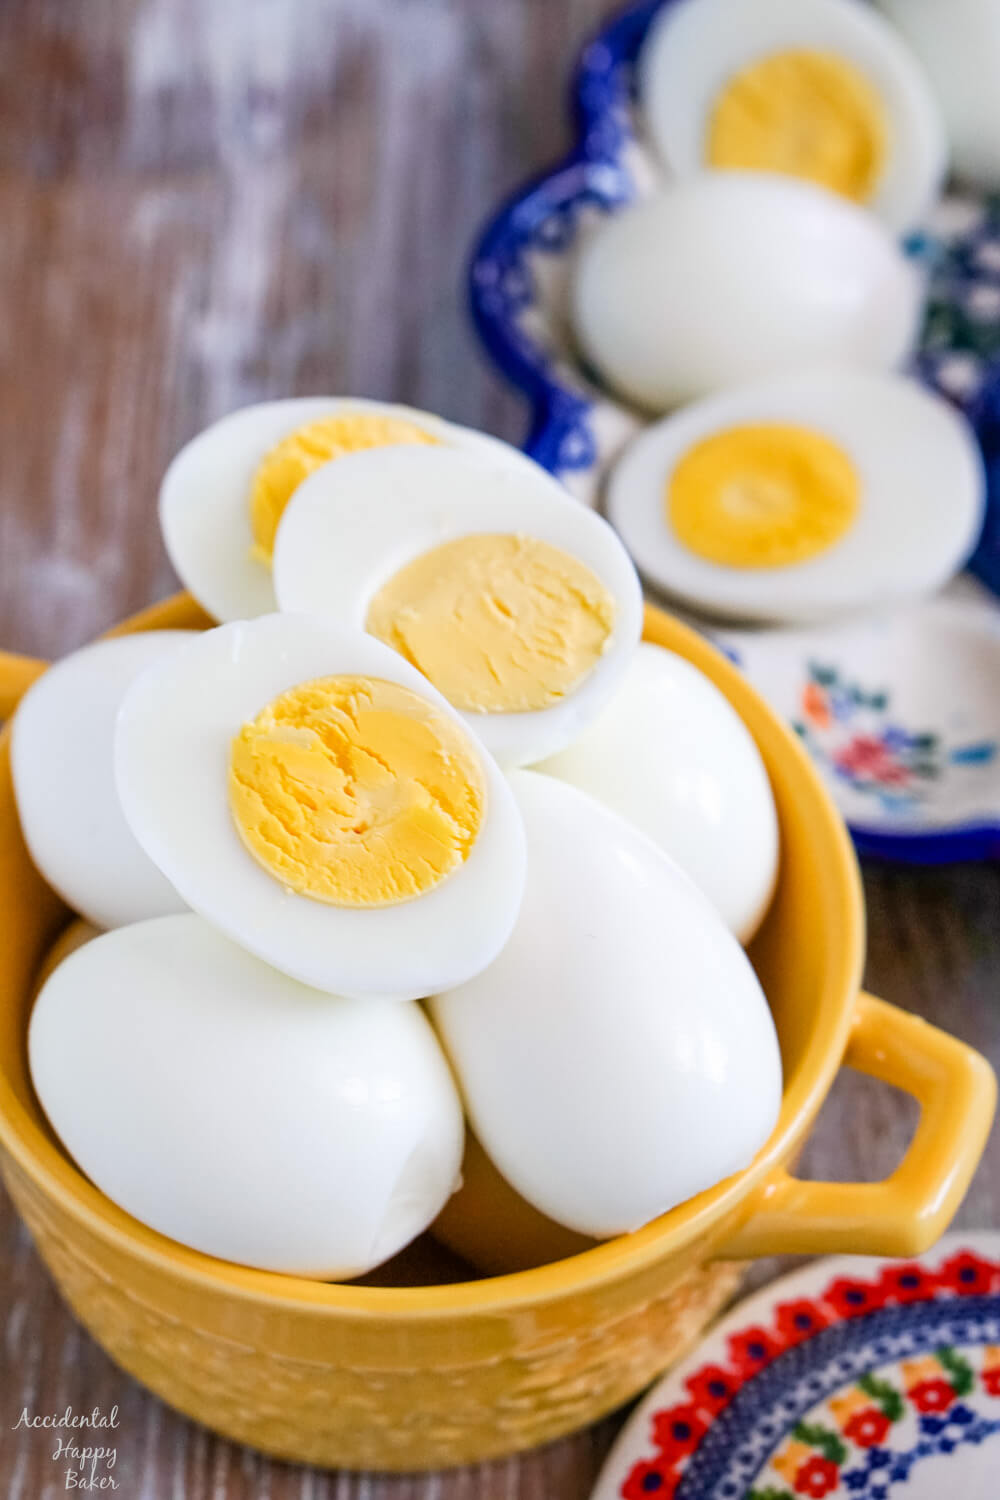 A yellow bowl full of hard boiled eggs, with a few sliced hard boiled eggs laying on top.